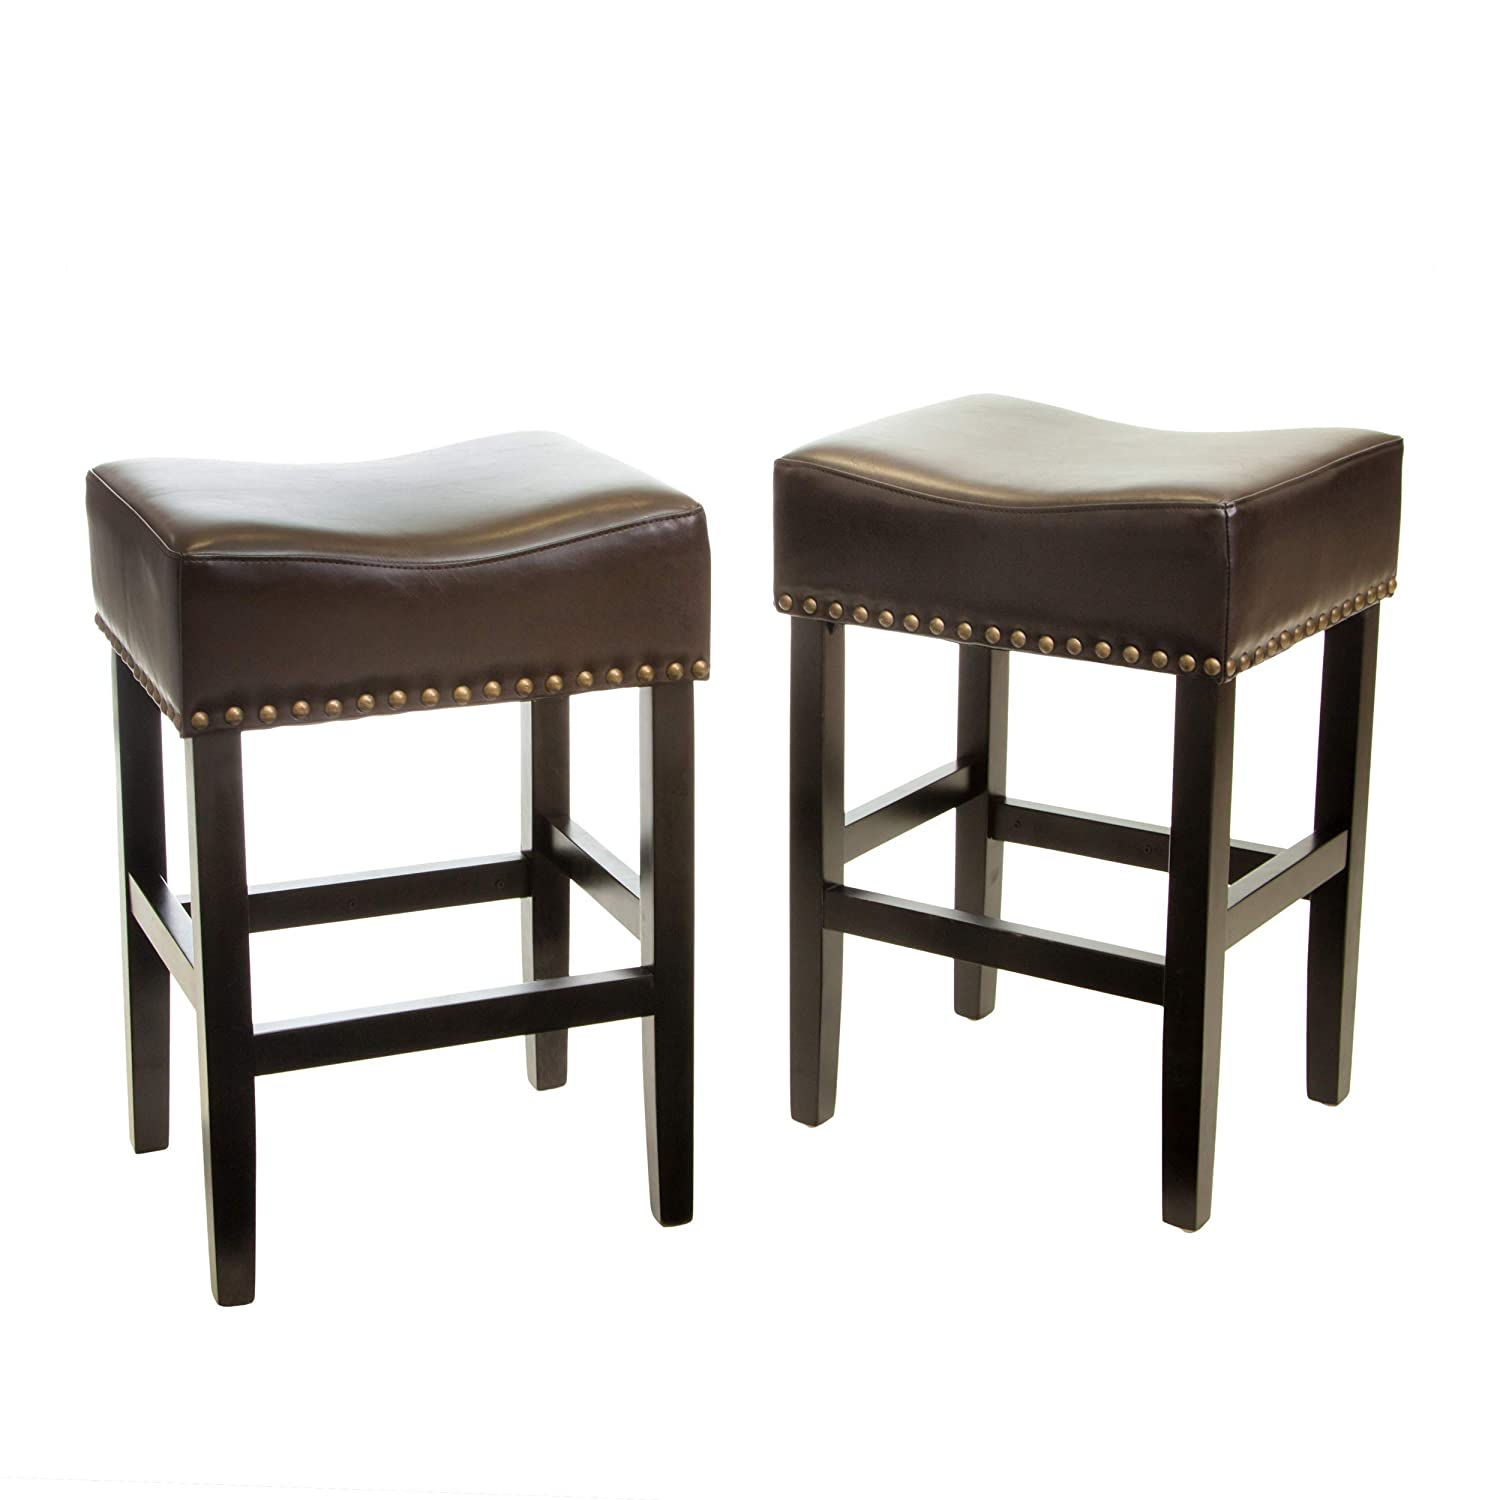 Amazon com great deal furniture chantal backless brown counter stools with brass nailhead studs set of 2 kitchen dining